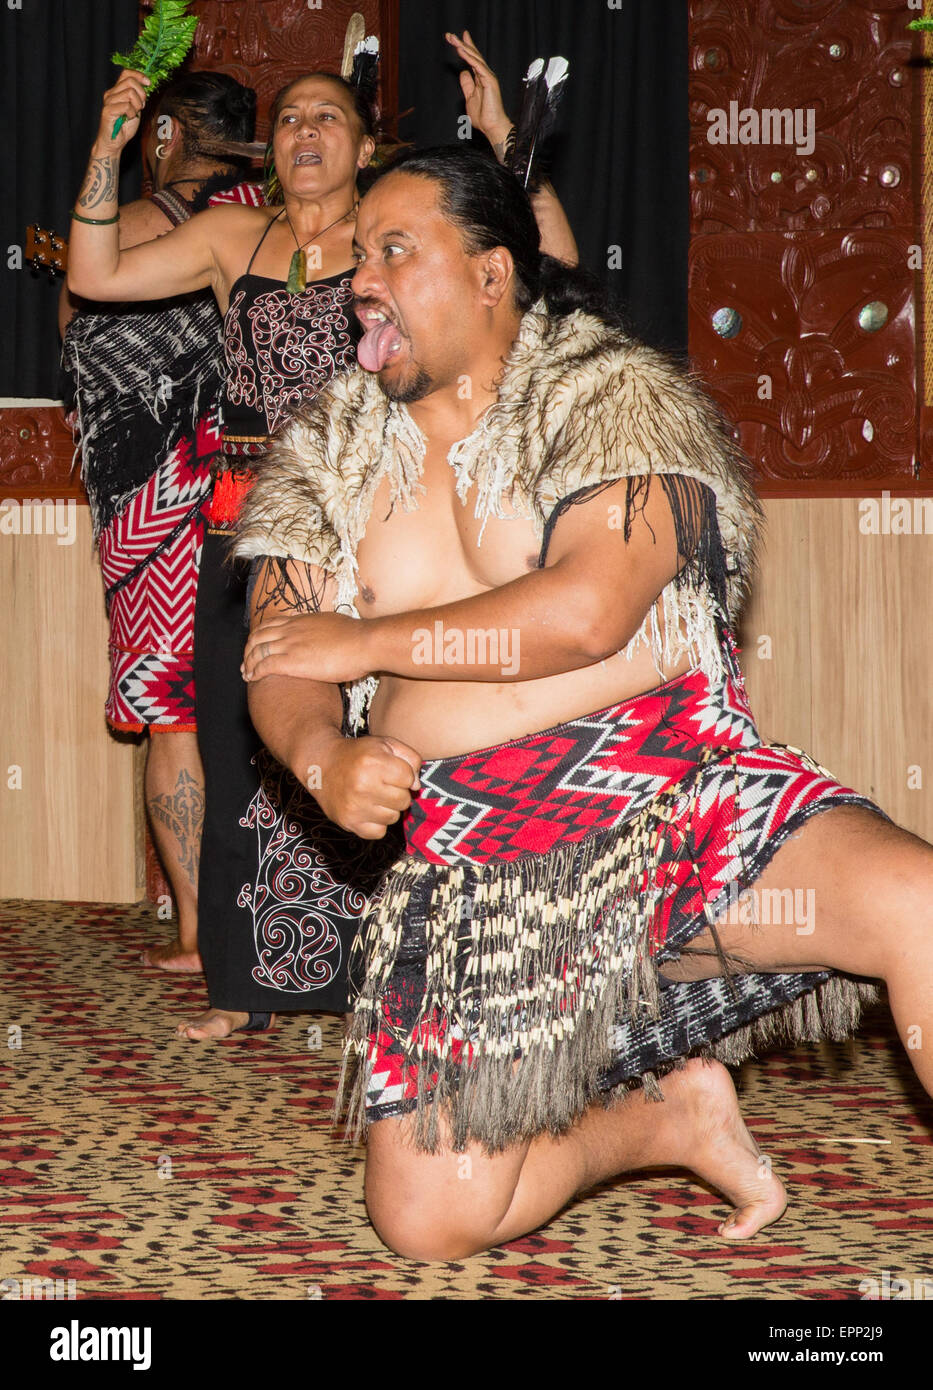 Maori tribal dancers performing at Te Puia near Rotorua in New Zealand's North Island - Stock Image